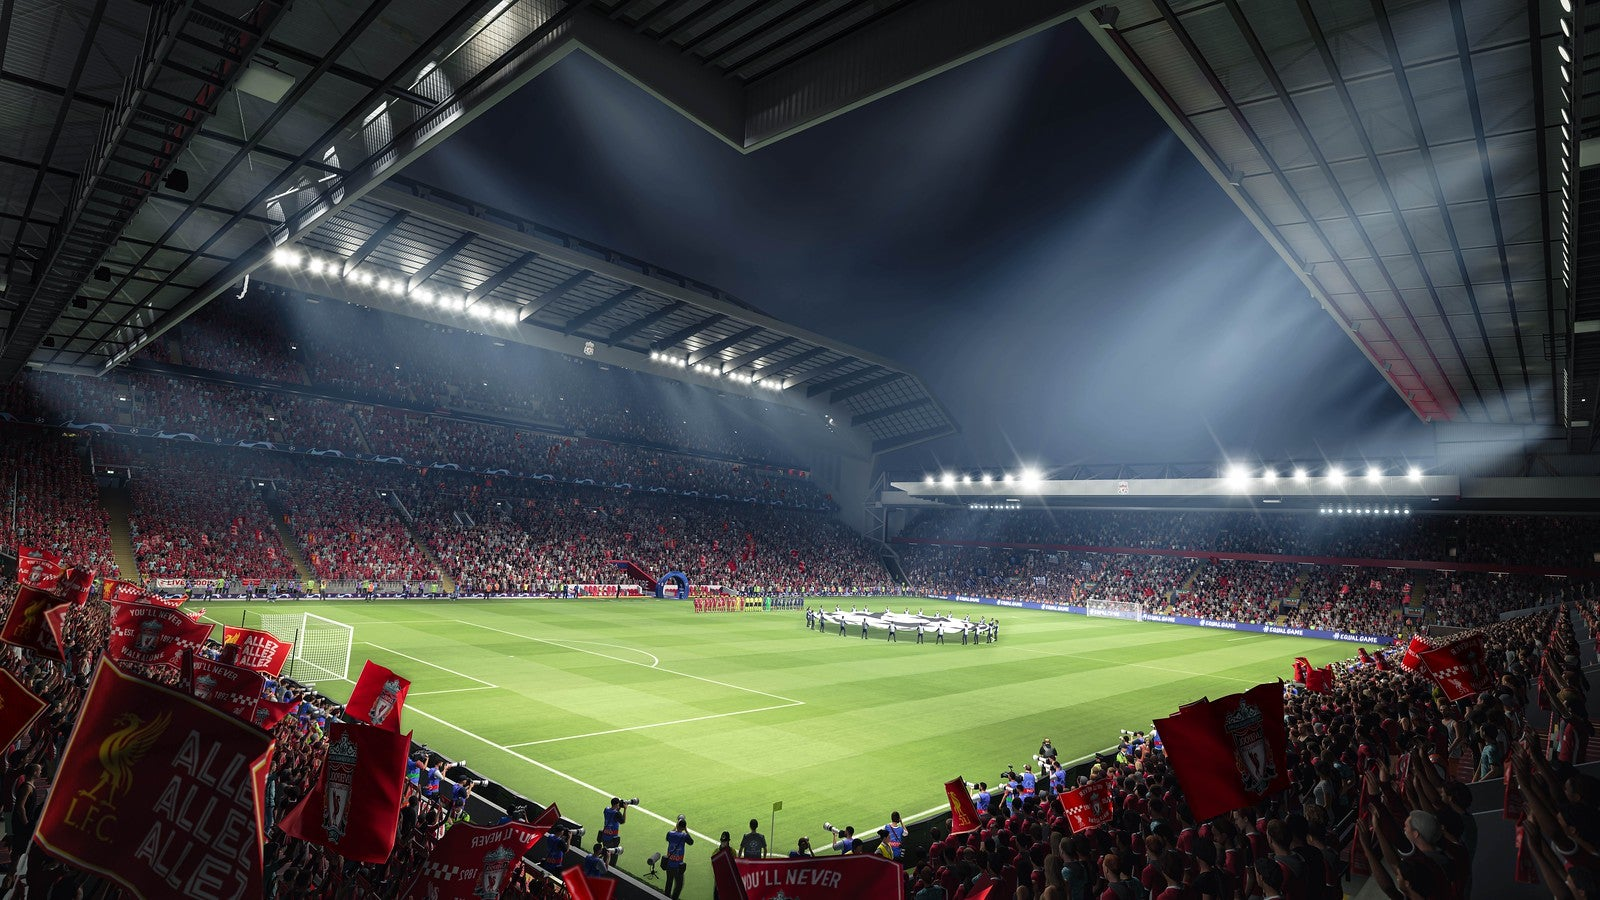 FIFA 21 on PS5 has a big advantage over Xbox Series X/S | Trusted Reviews